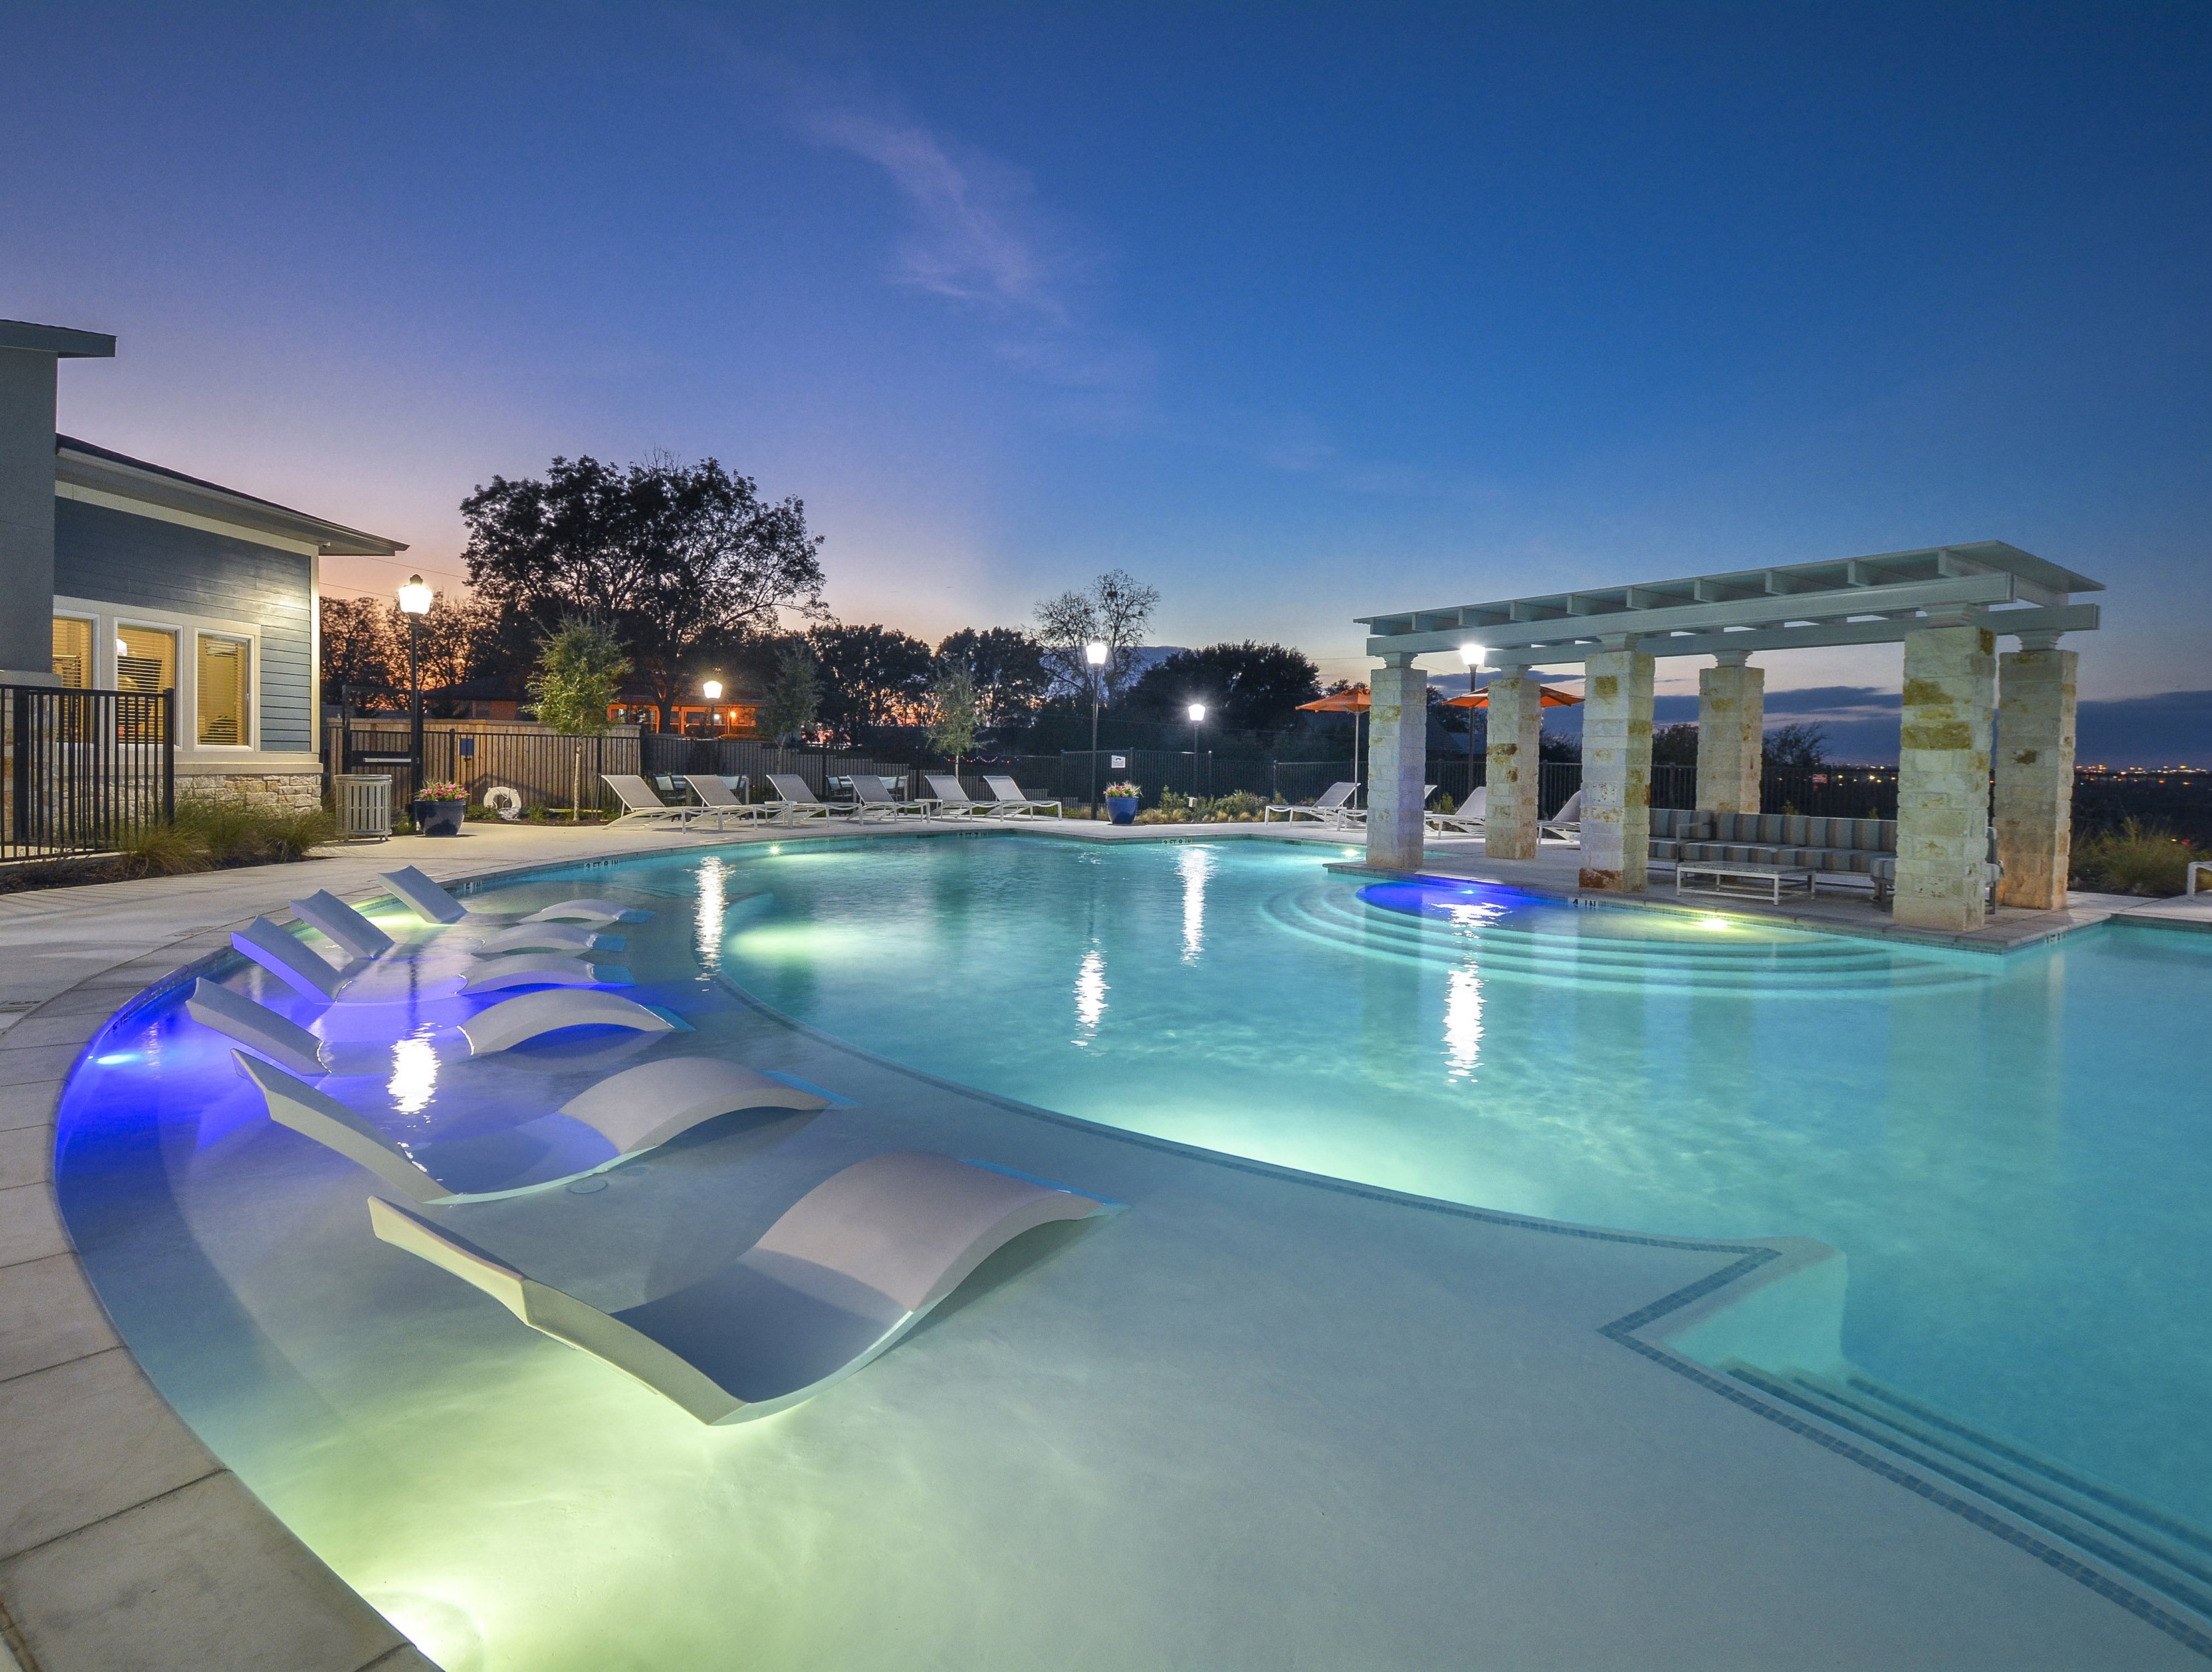 Crystal Clear Swimming Pool with Sundeck and BBQ Pits Throughout at The Terrace at Walnut Creek, Austin, 78724